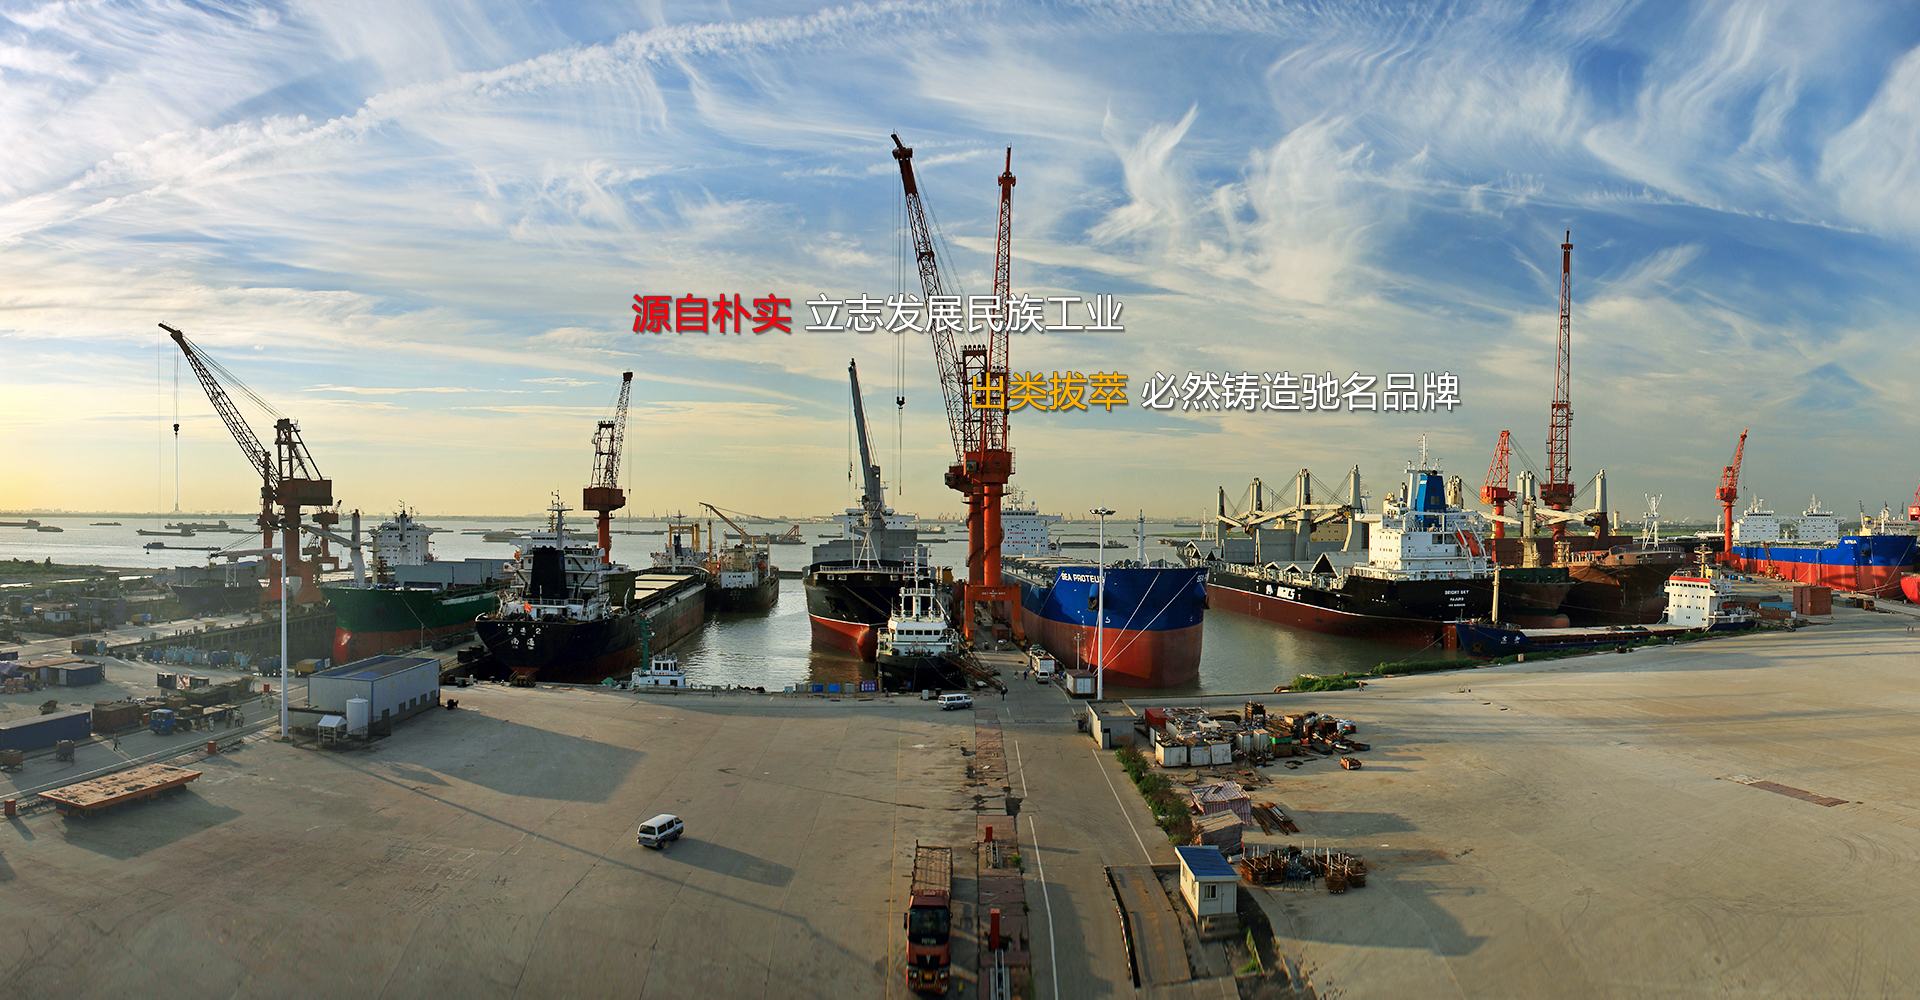 ZHANGJIAGANG JIU SHENG SHIPYARD CO.,LTD